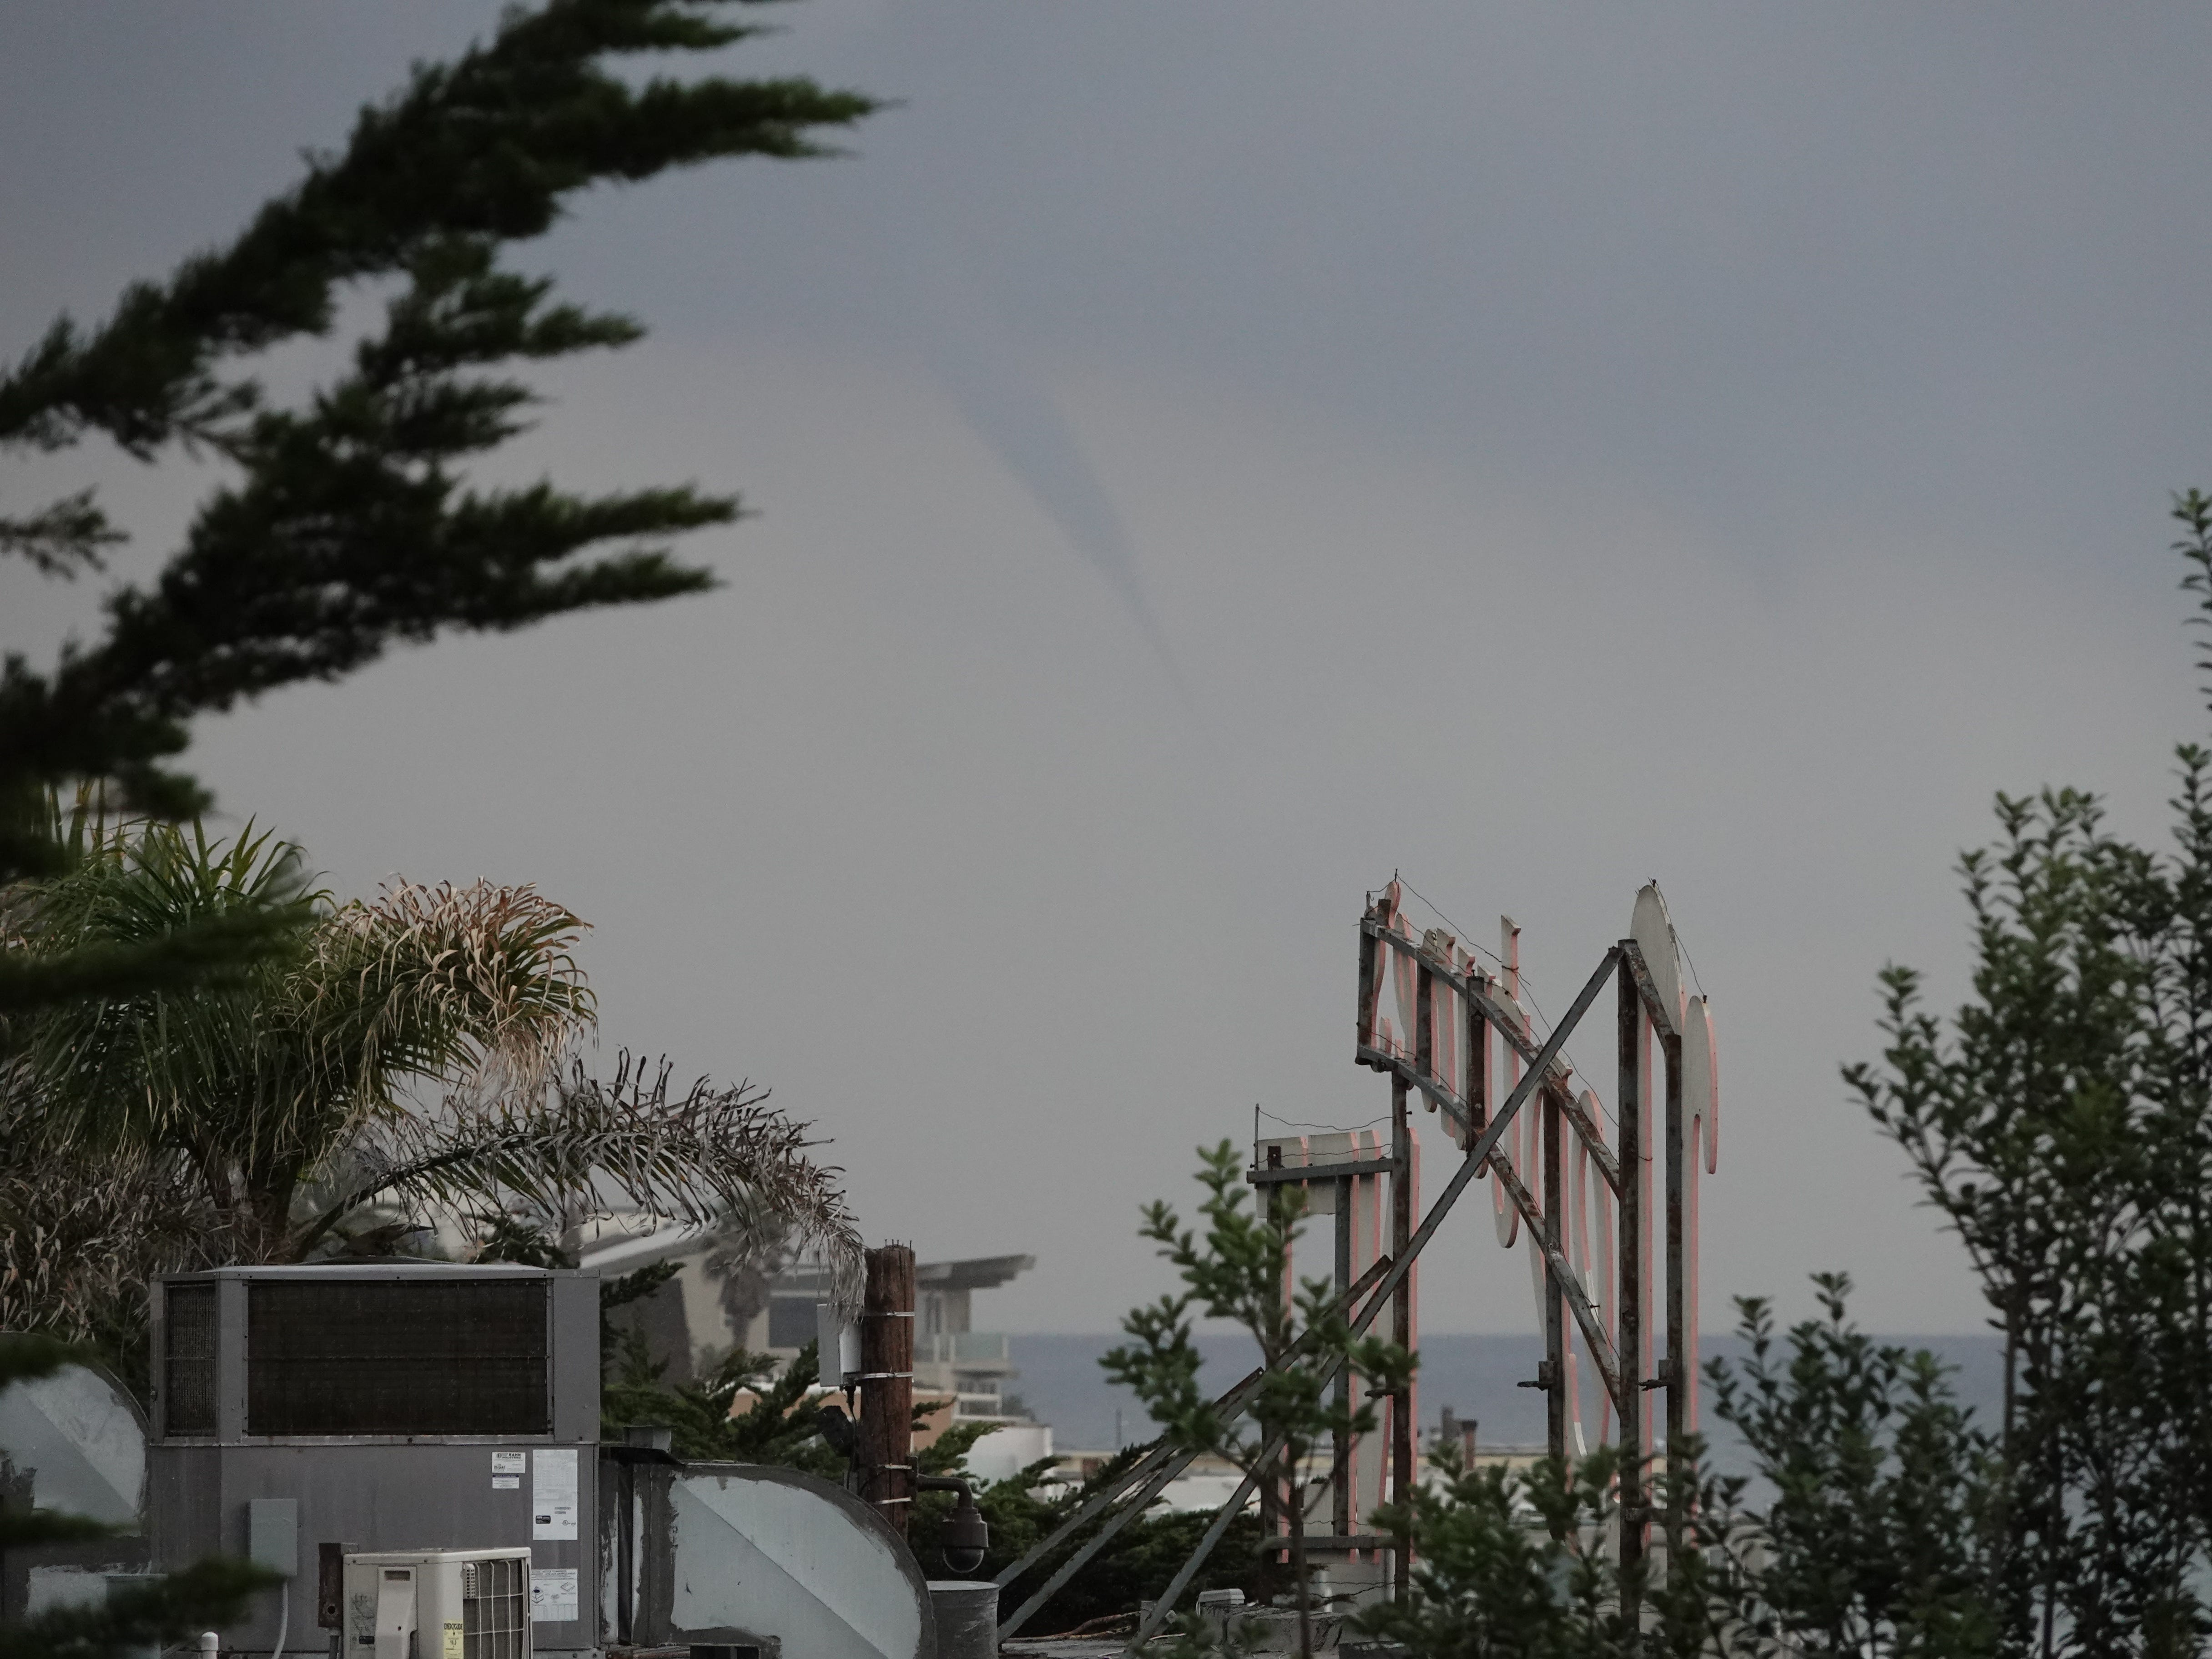 A funnel cloud seen from behind the Neptune's Net sign on Pacific Coast Highway Saturday afternoon as a storm system moved into the area.